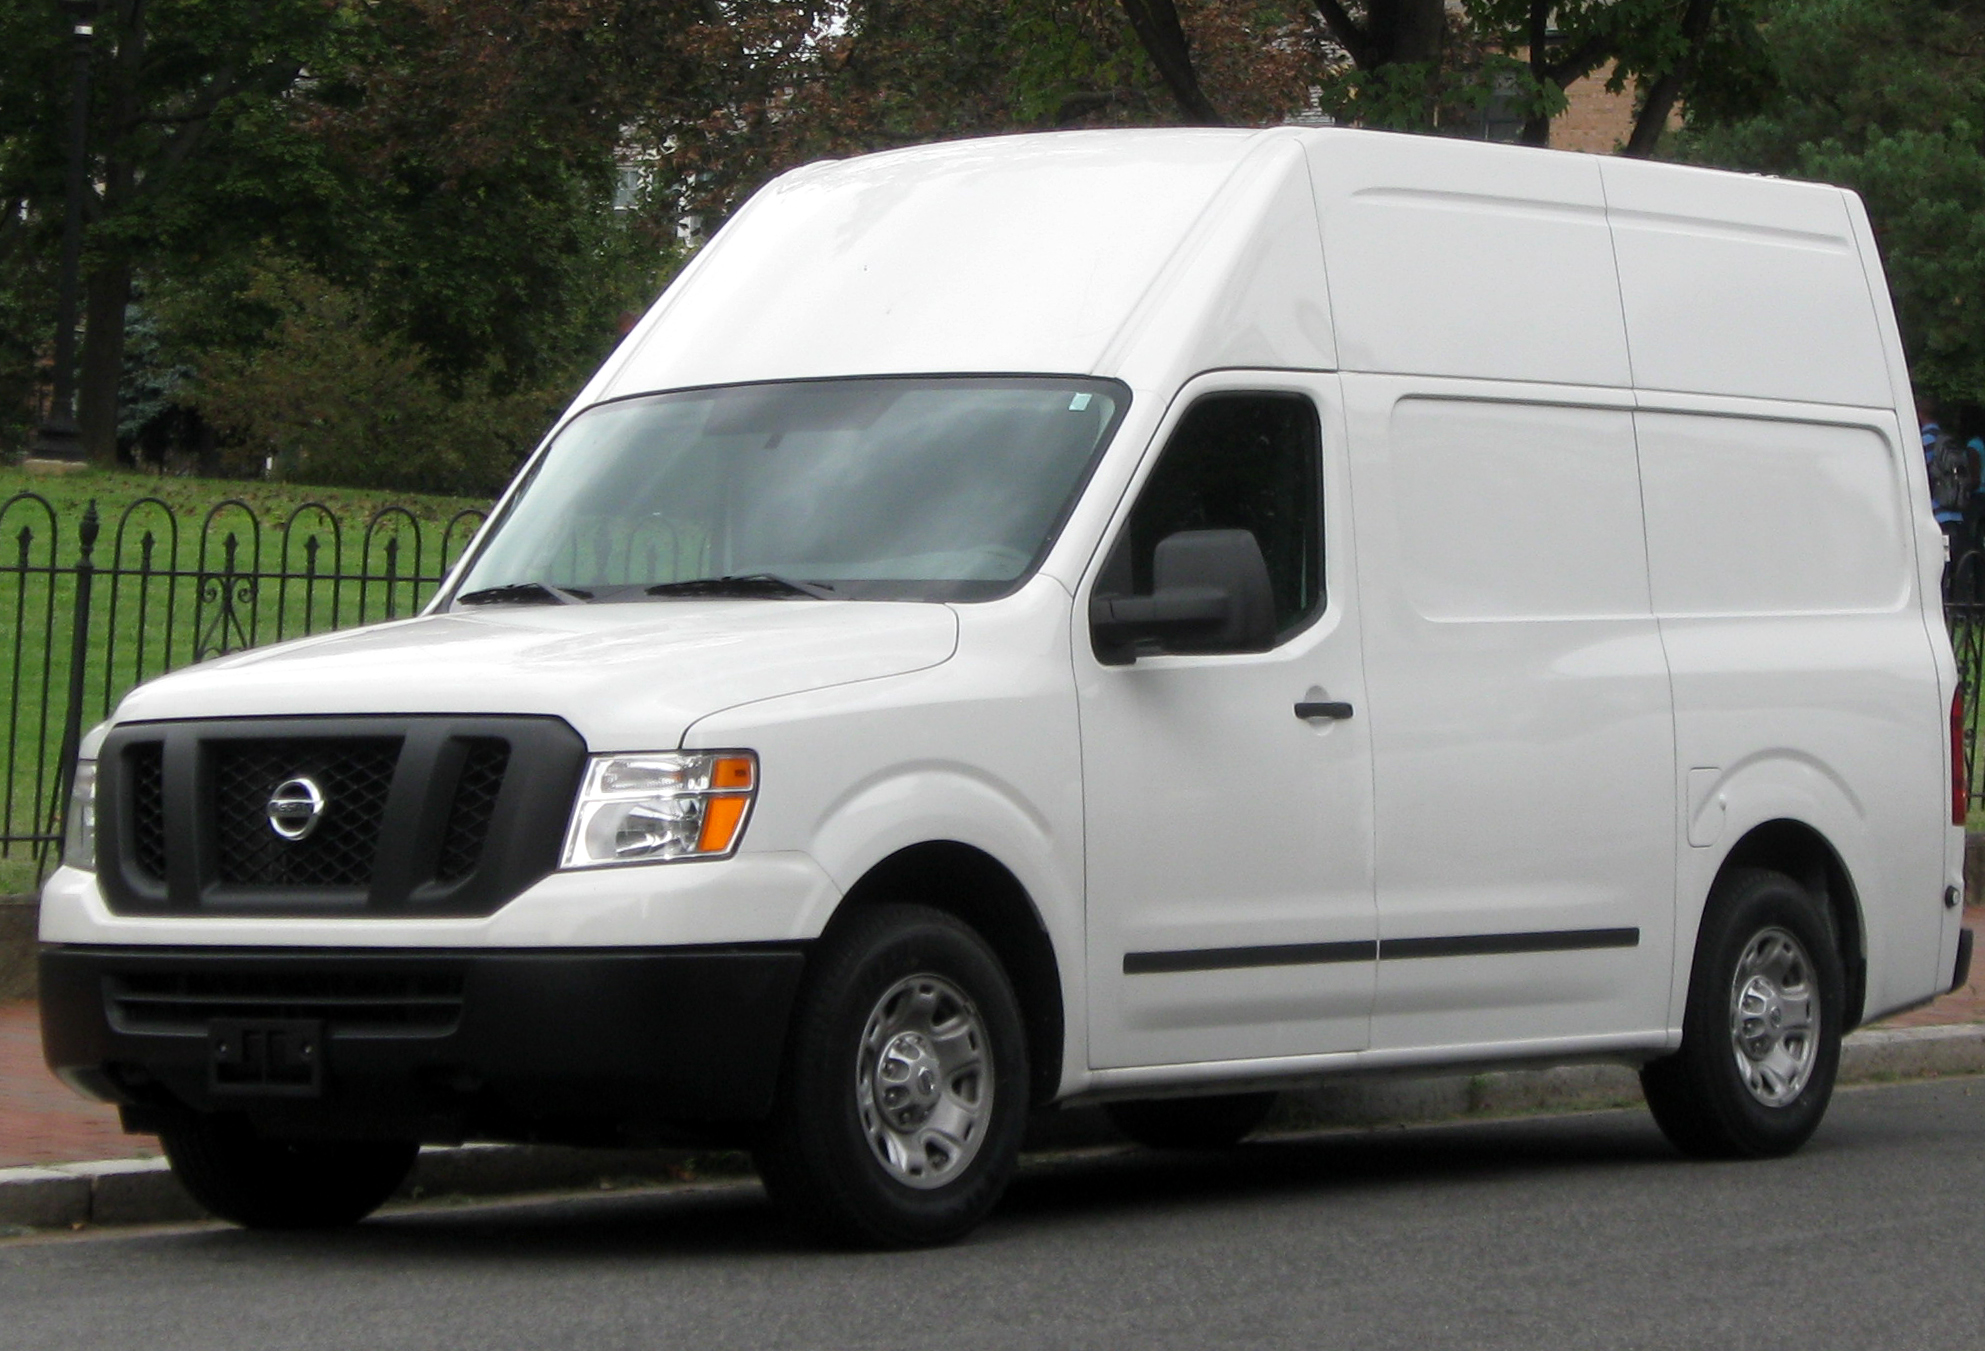 Debating on whether to purchase a used Nissan NV 2500 High Roof to live out  of and tour across the country. Better vans for long distances/large space  to ...